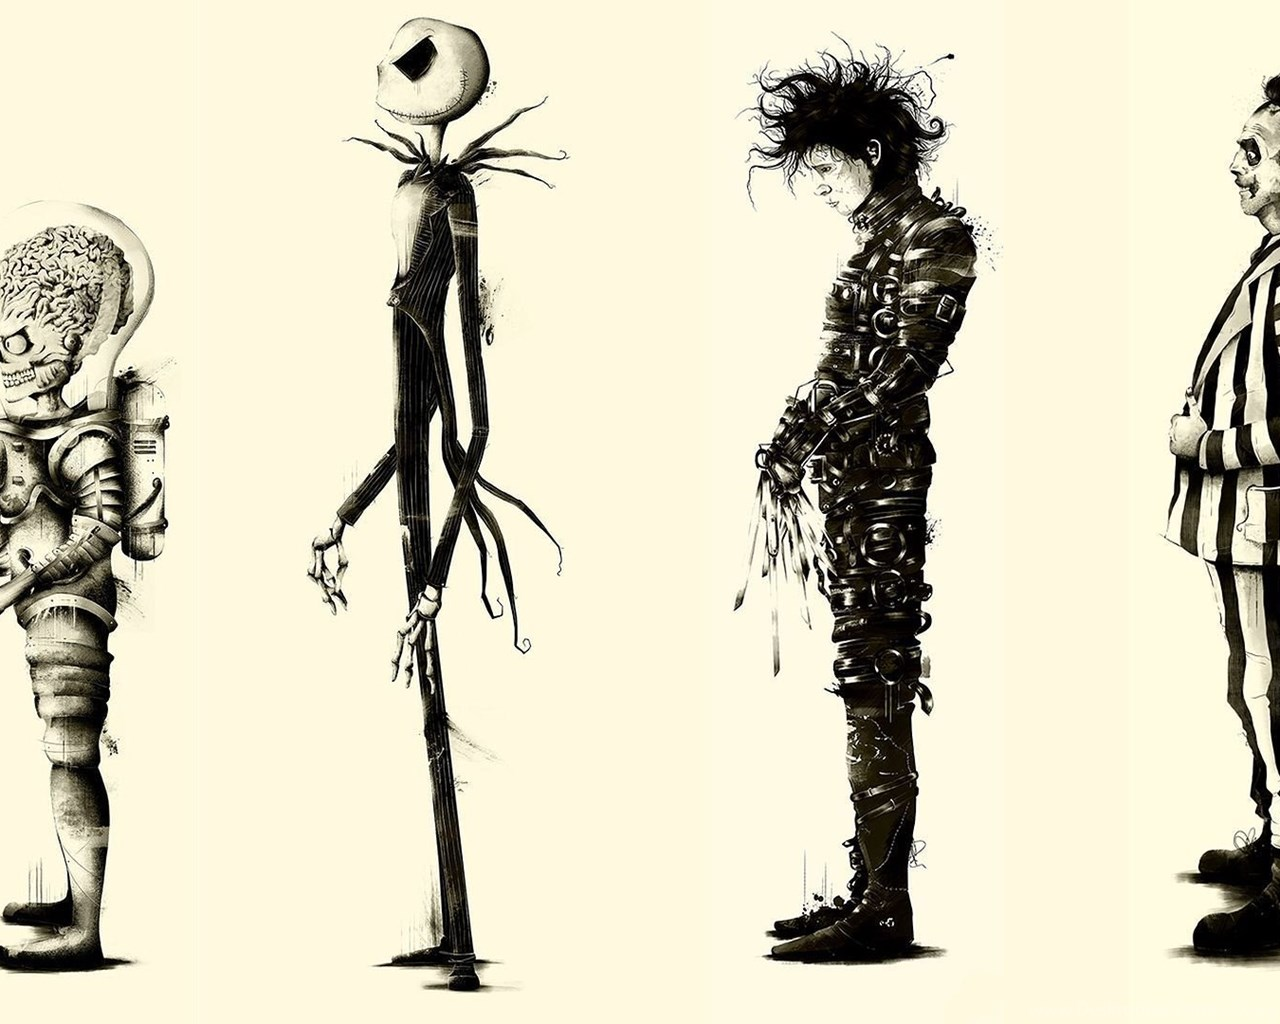 Hd Background Wallpaper 800x600: Beetlejuice Fan Art Movies Tim Burton » WallDevil Best